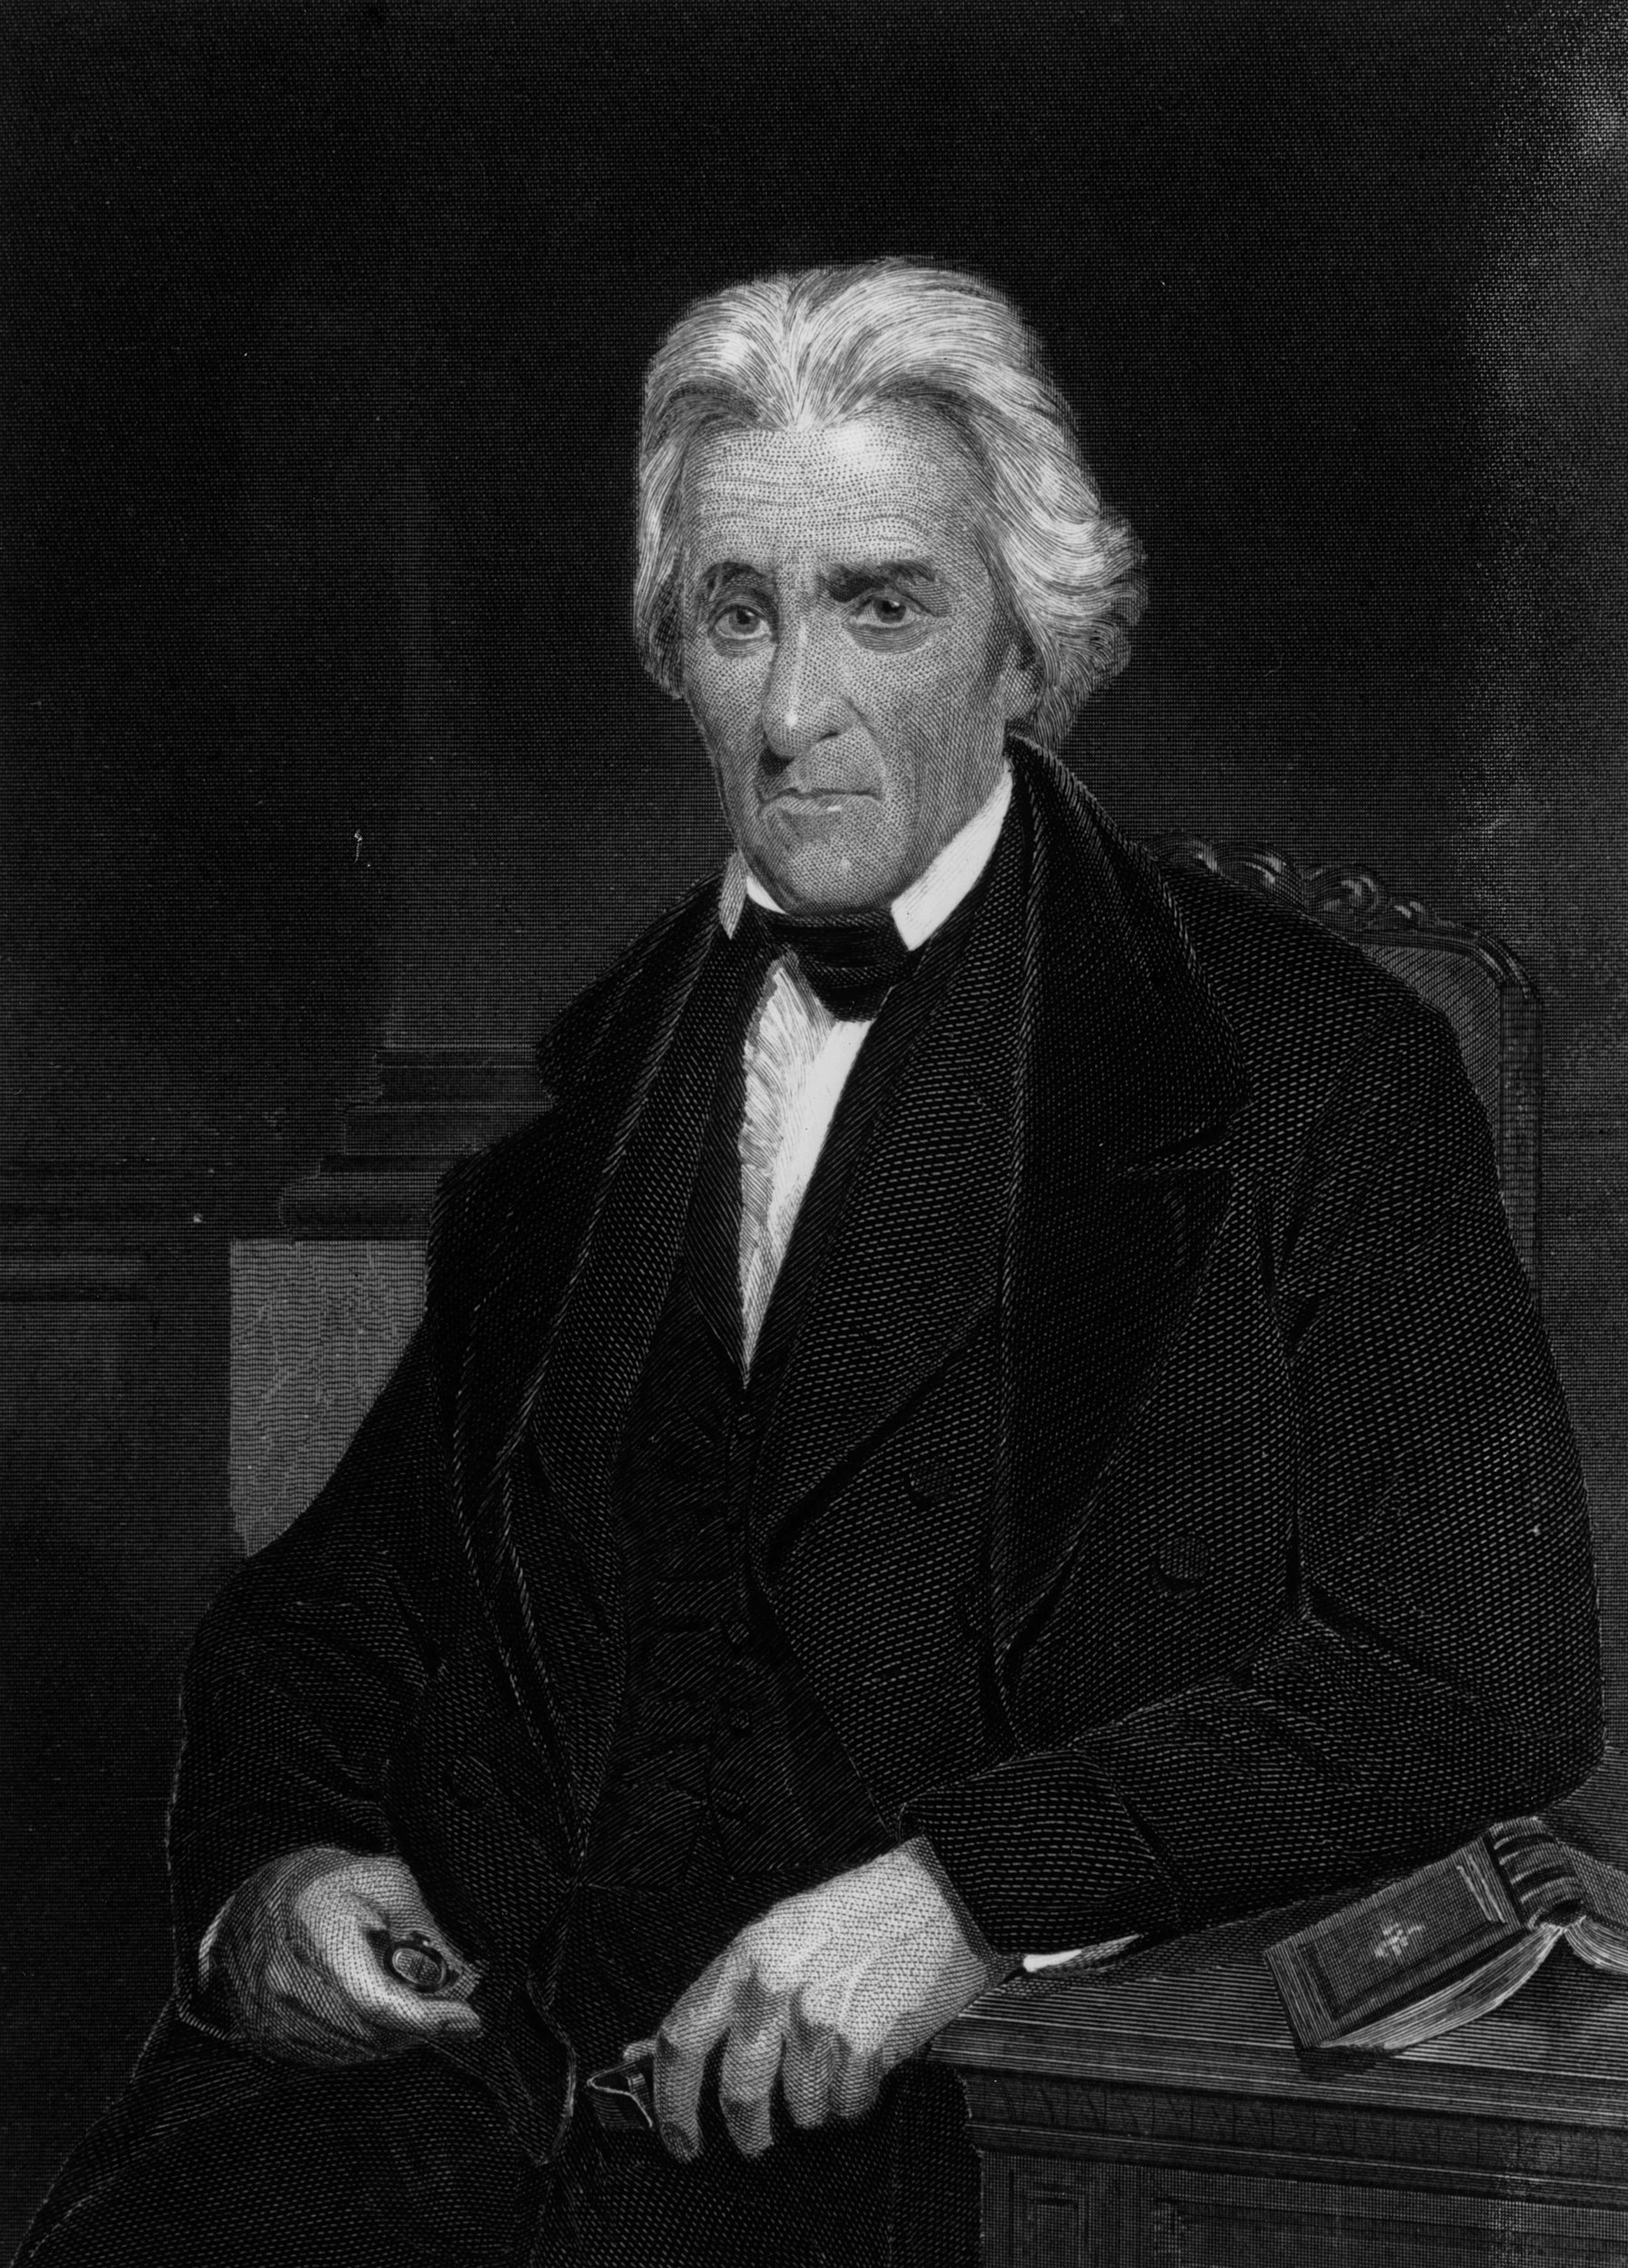 aqndrew jackson Andrew jackson was the 7th president of the united states he's known for representing the rights of the common man and for being at the forefront of the modern.